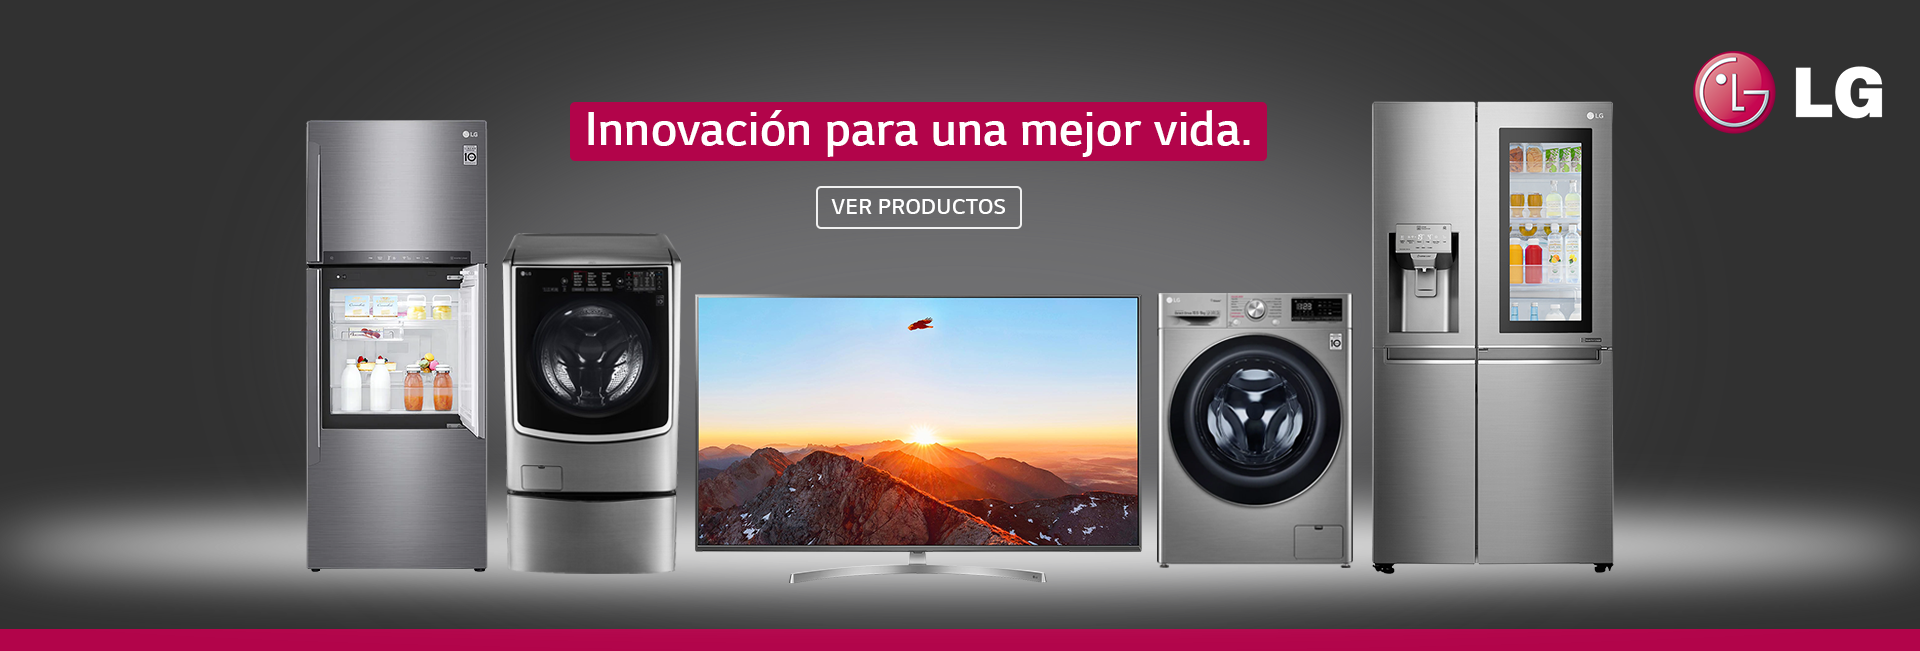 LG Productos